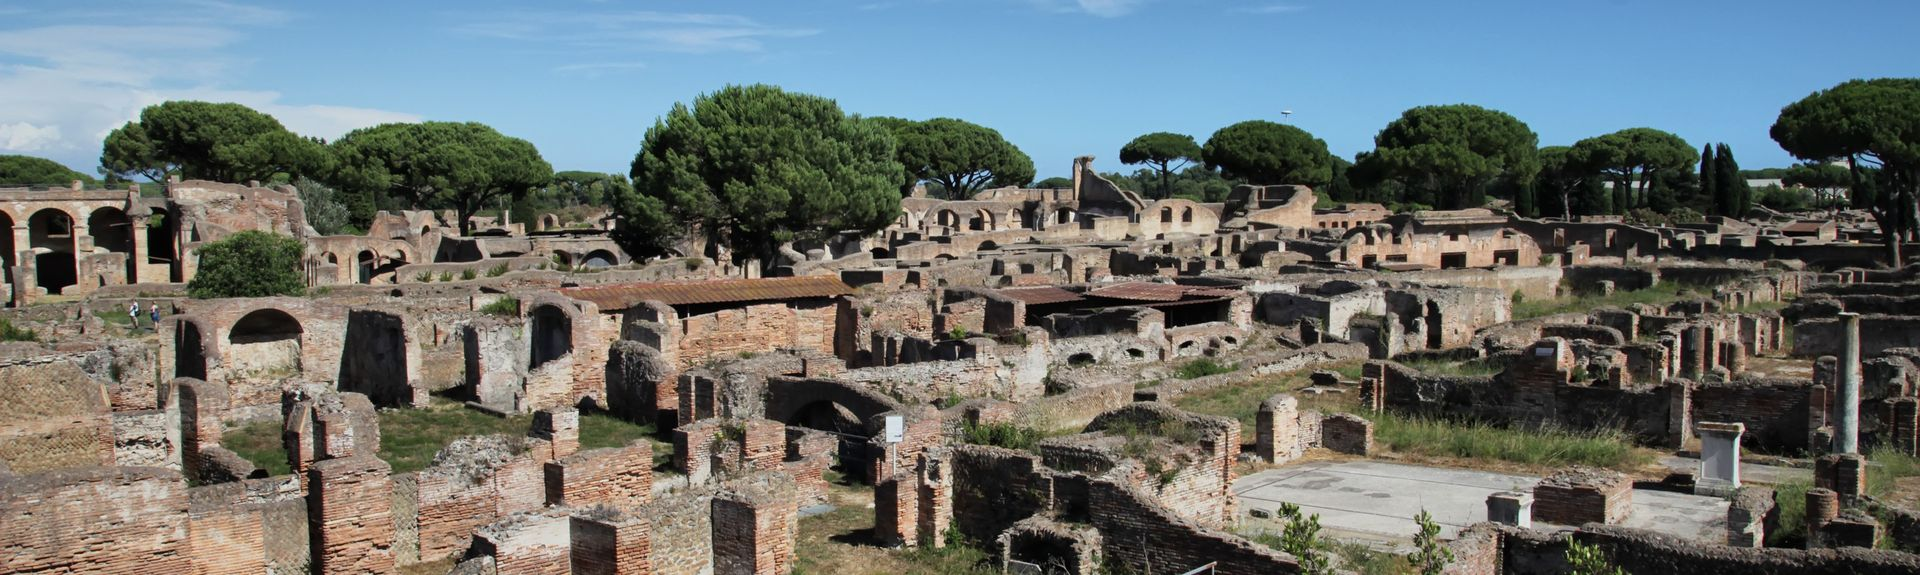 Ostia, Metropolitan City of Rome, Italy